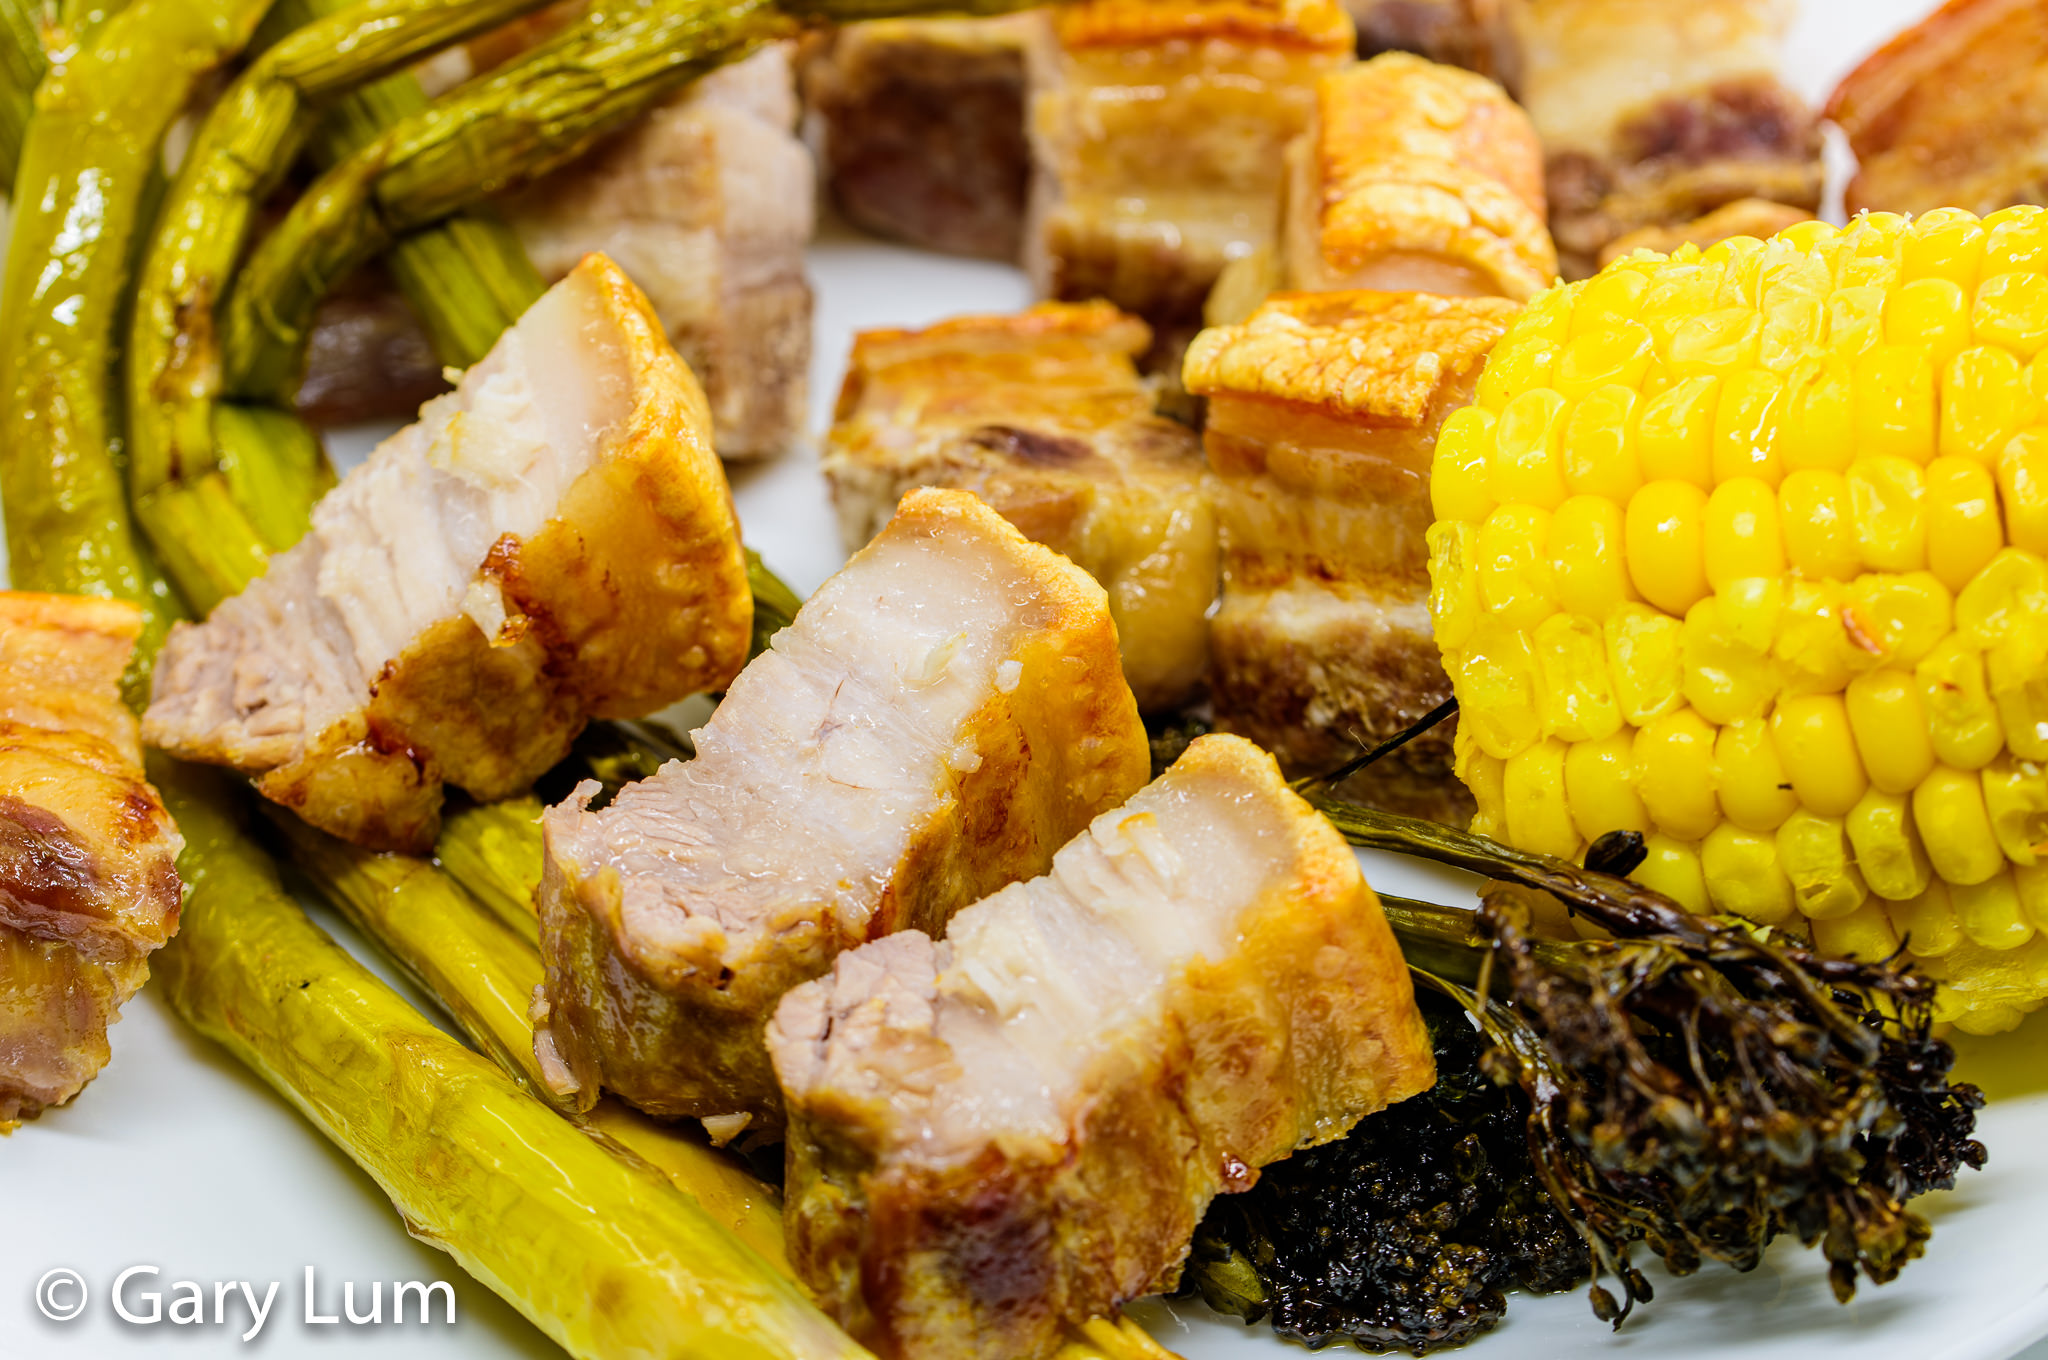 Close up. Oven-baked pork belly with broccolini, asparagus, and corn. Gary Lum.